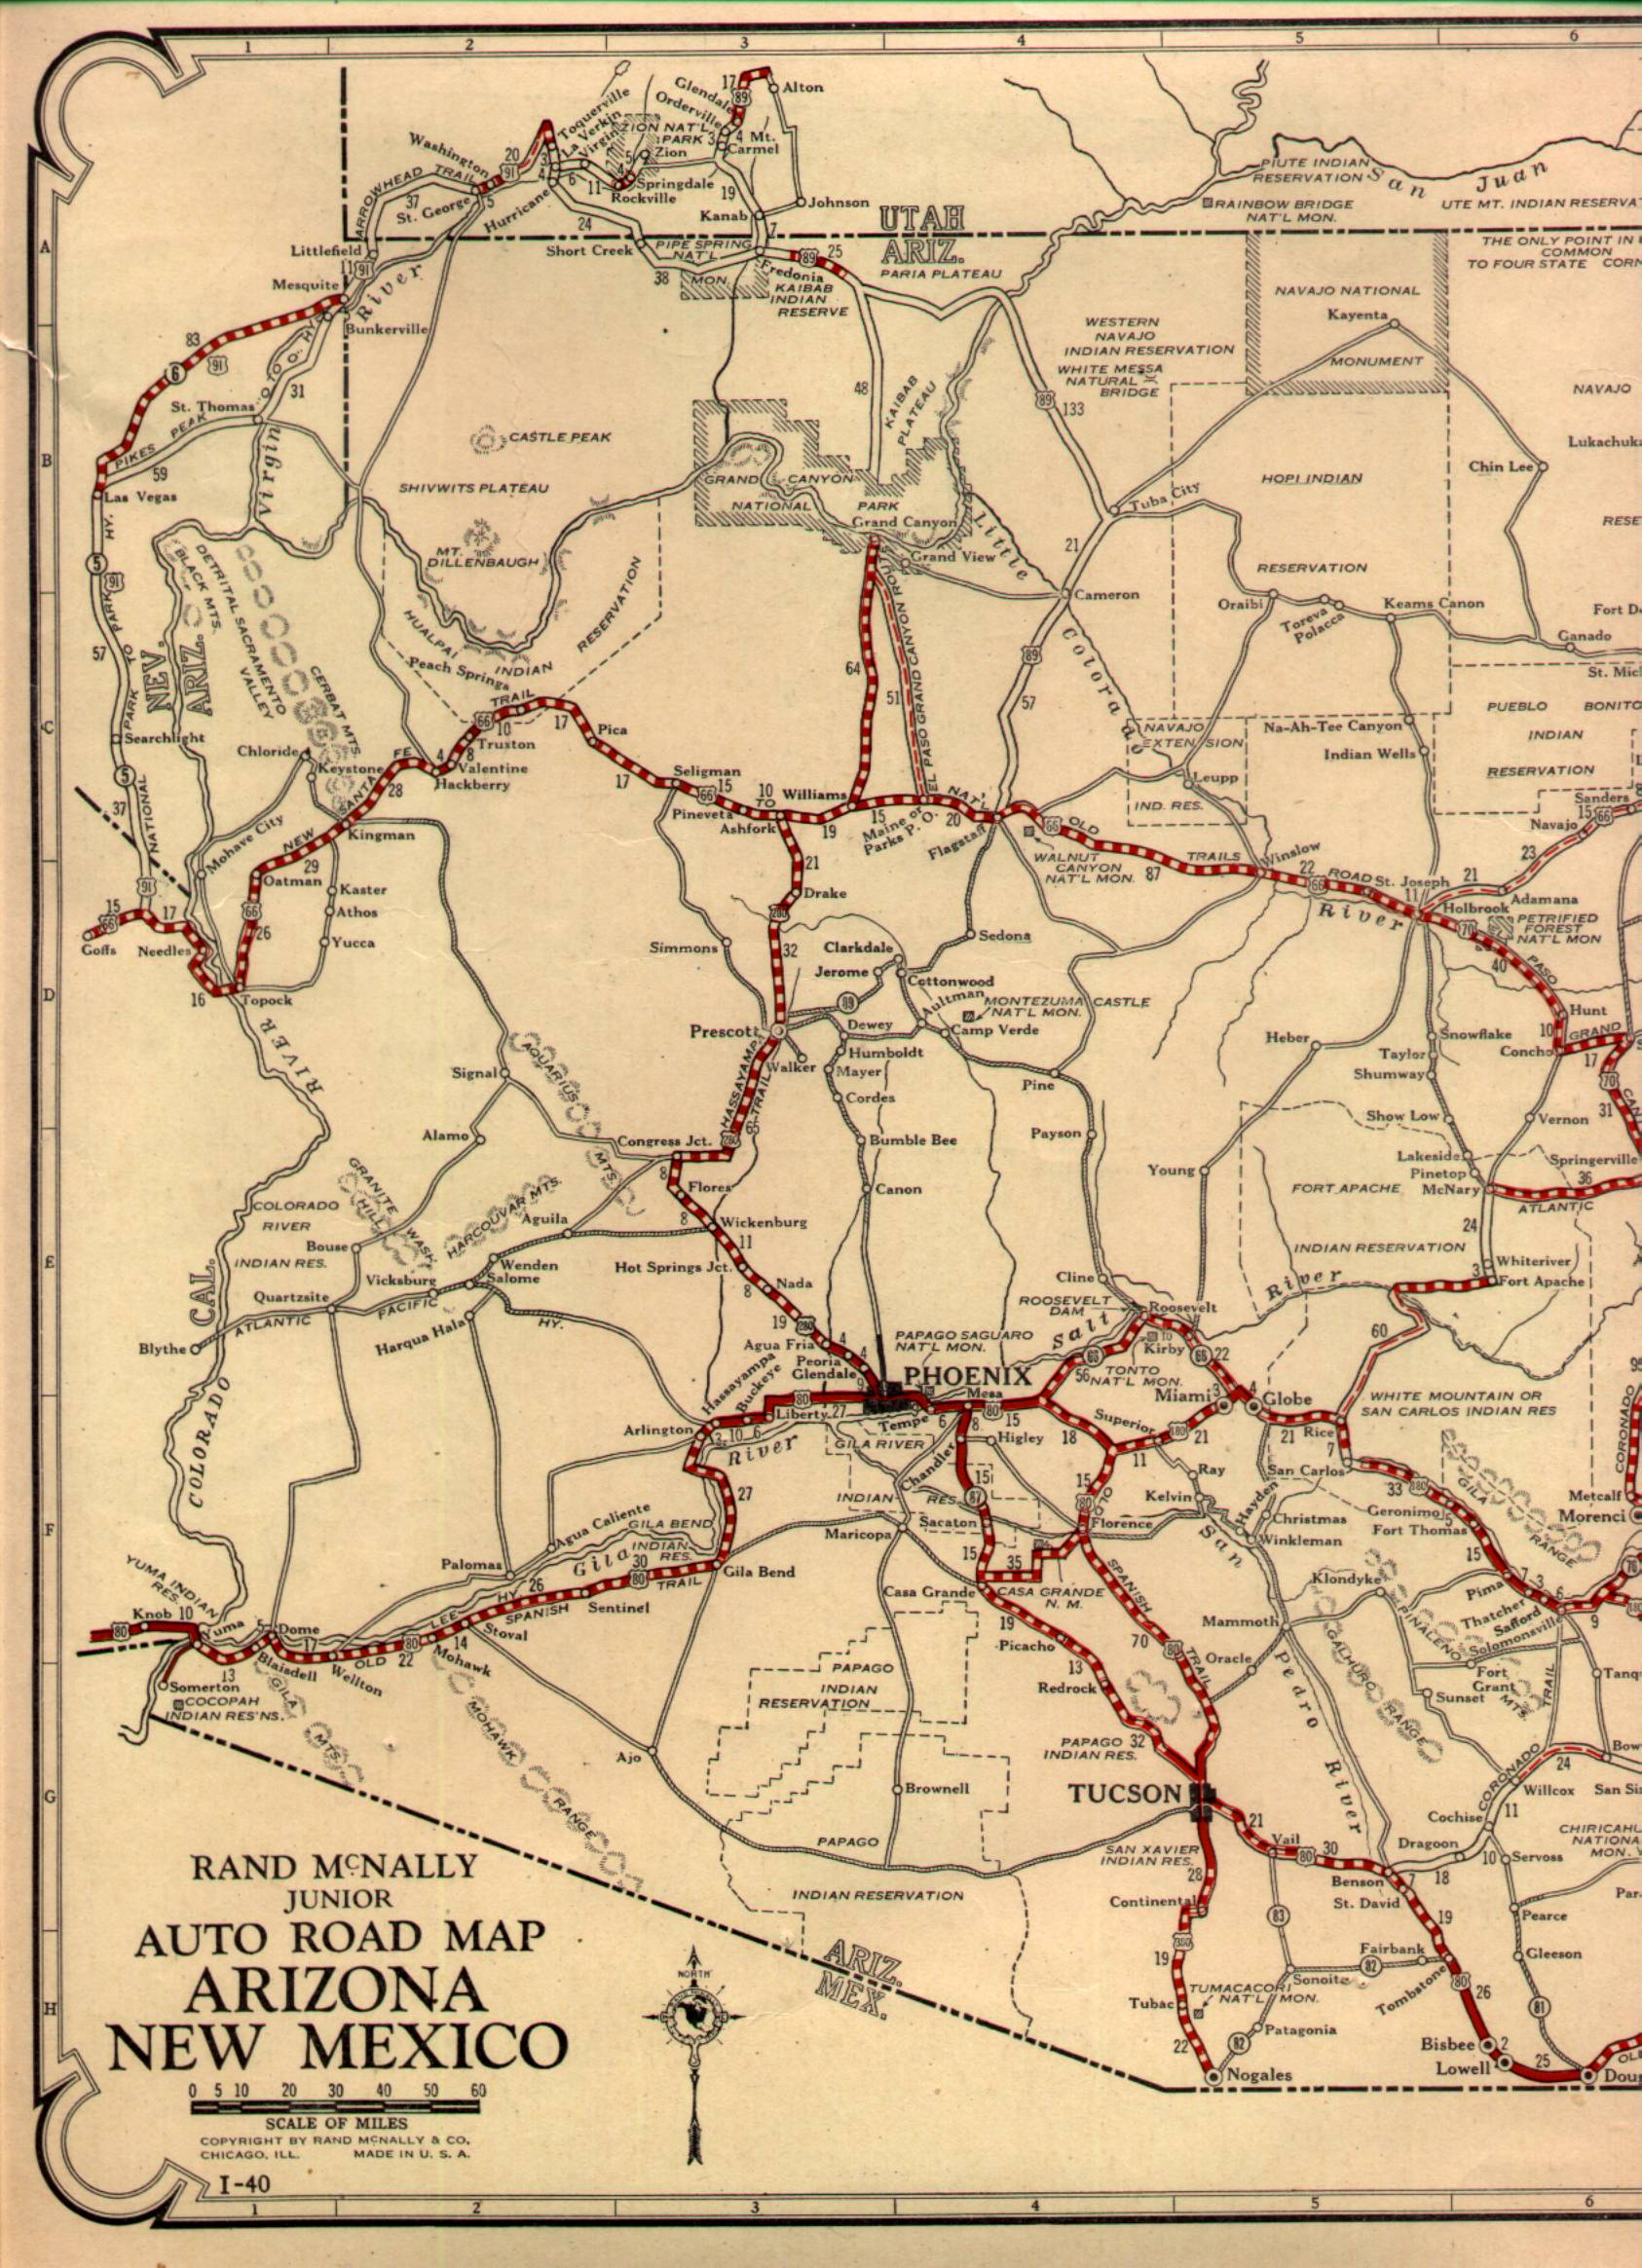 Map Of Us 60 Az Throwback Thursday; US Route 60/Arizona State Route 77 Salt River